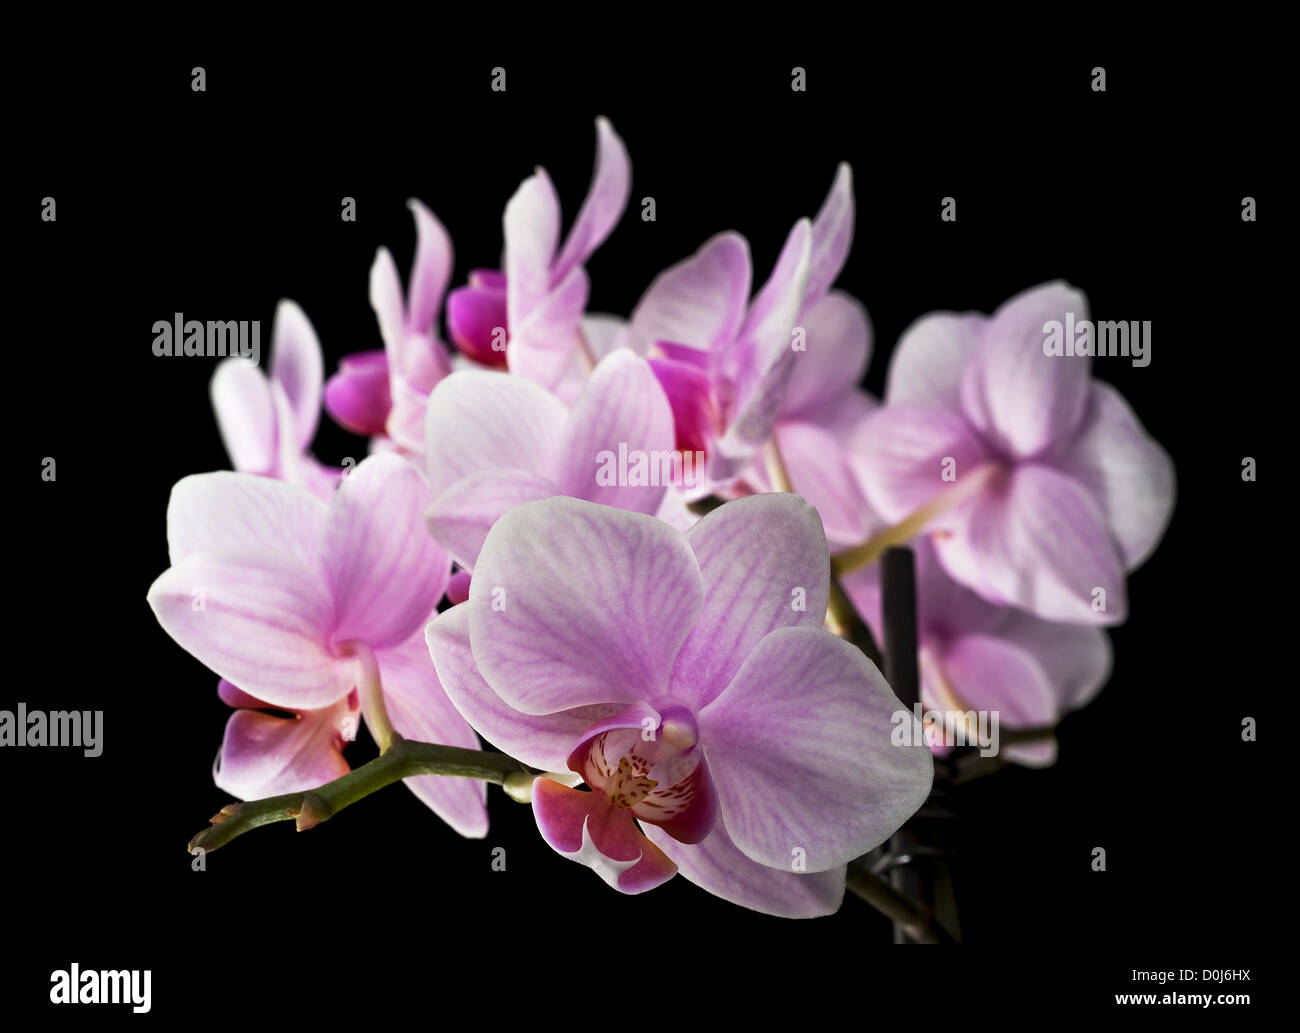 blooming orchis on black background - Stock Image